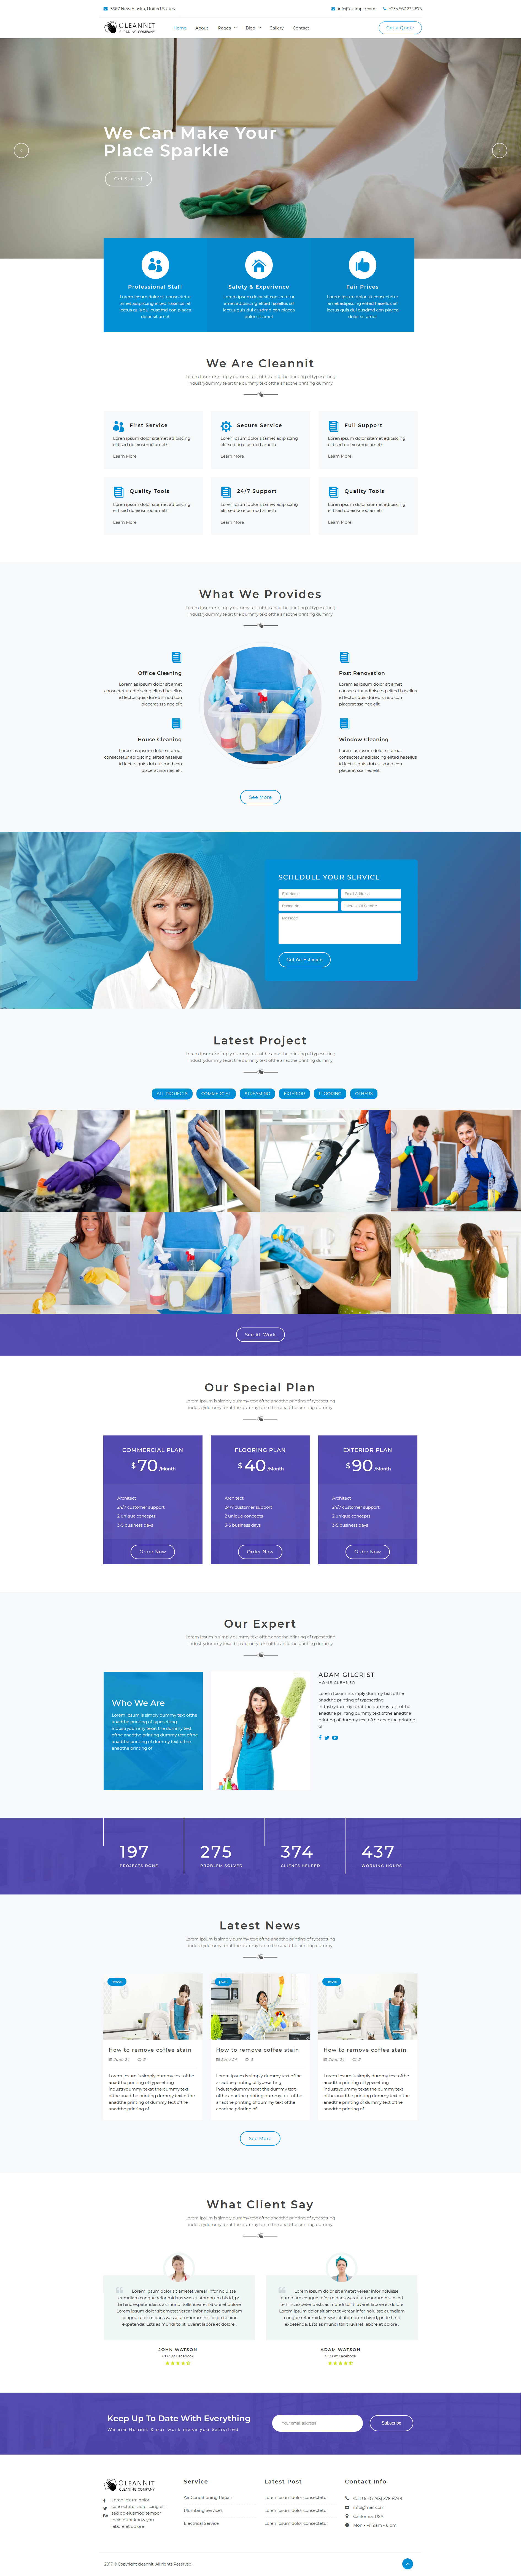 CleanNit - Cleaning Company Responsive Website - 1